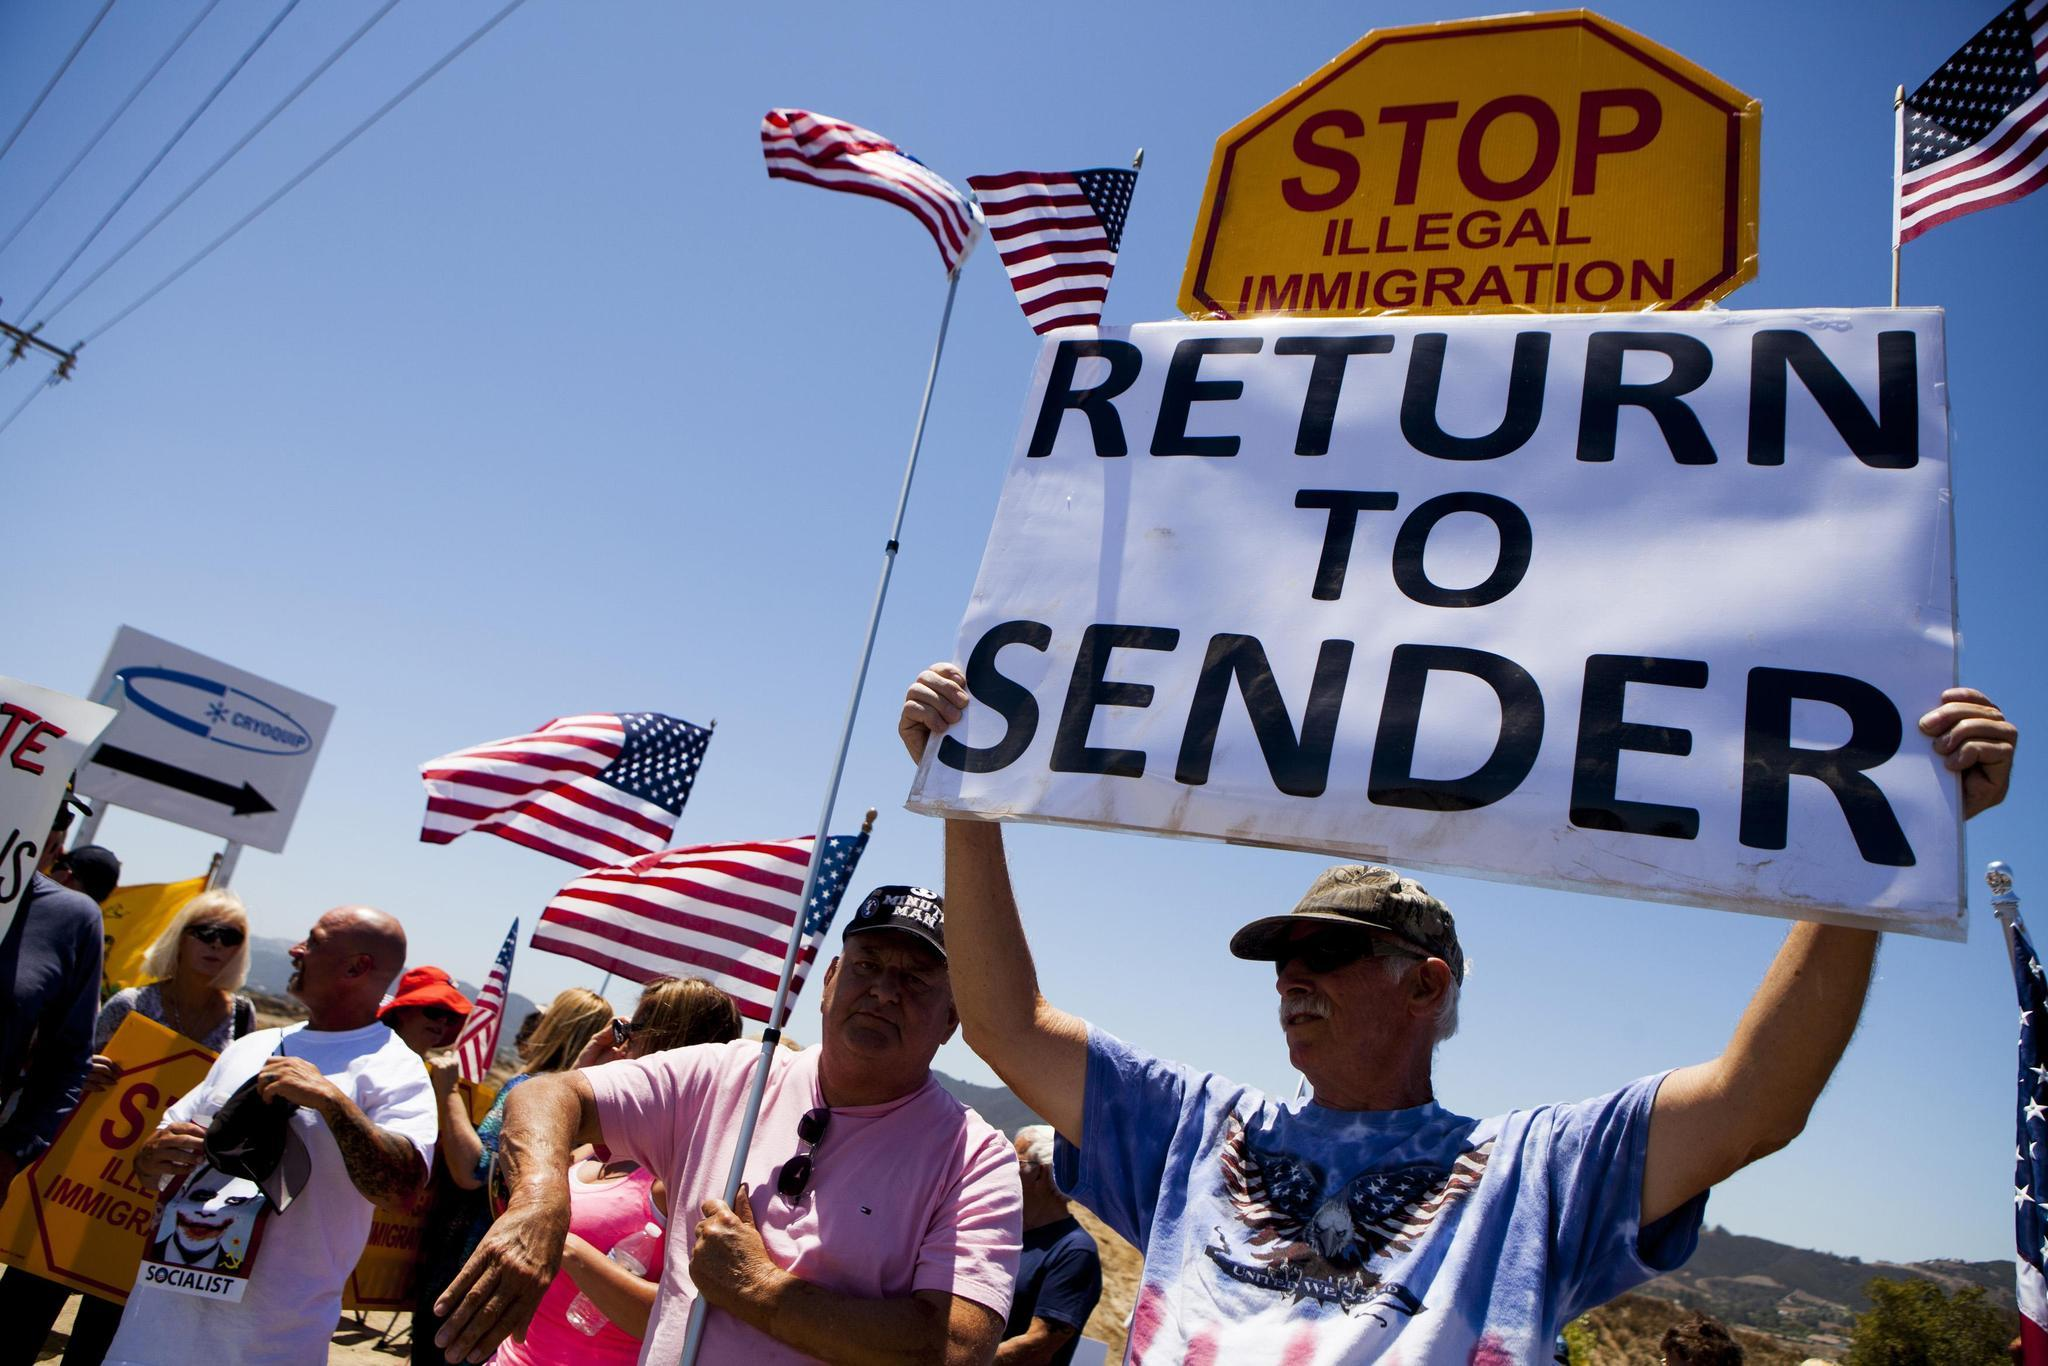 Demonstrators picket against the possible arrivals of undocumented migrants who may be processed at the Murrieta Border Patrol Station in Murrieta, California July 1, 2014.